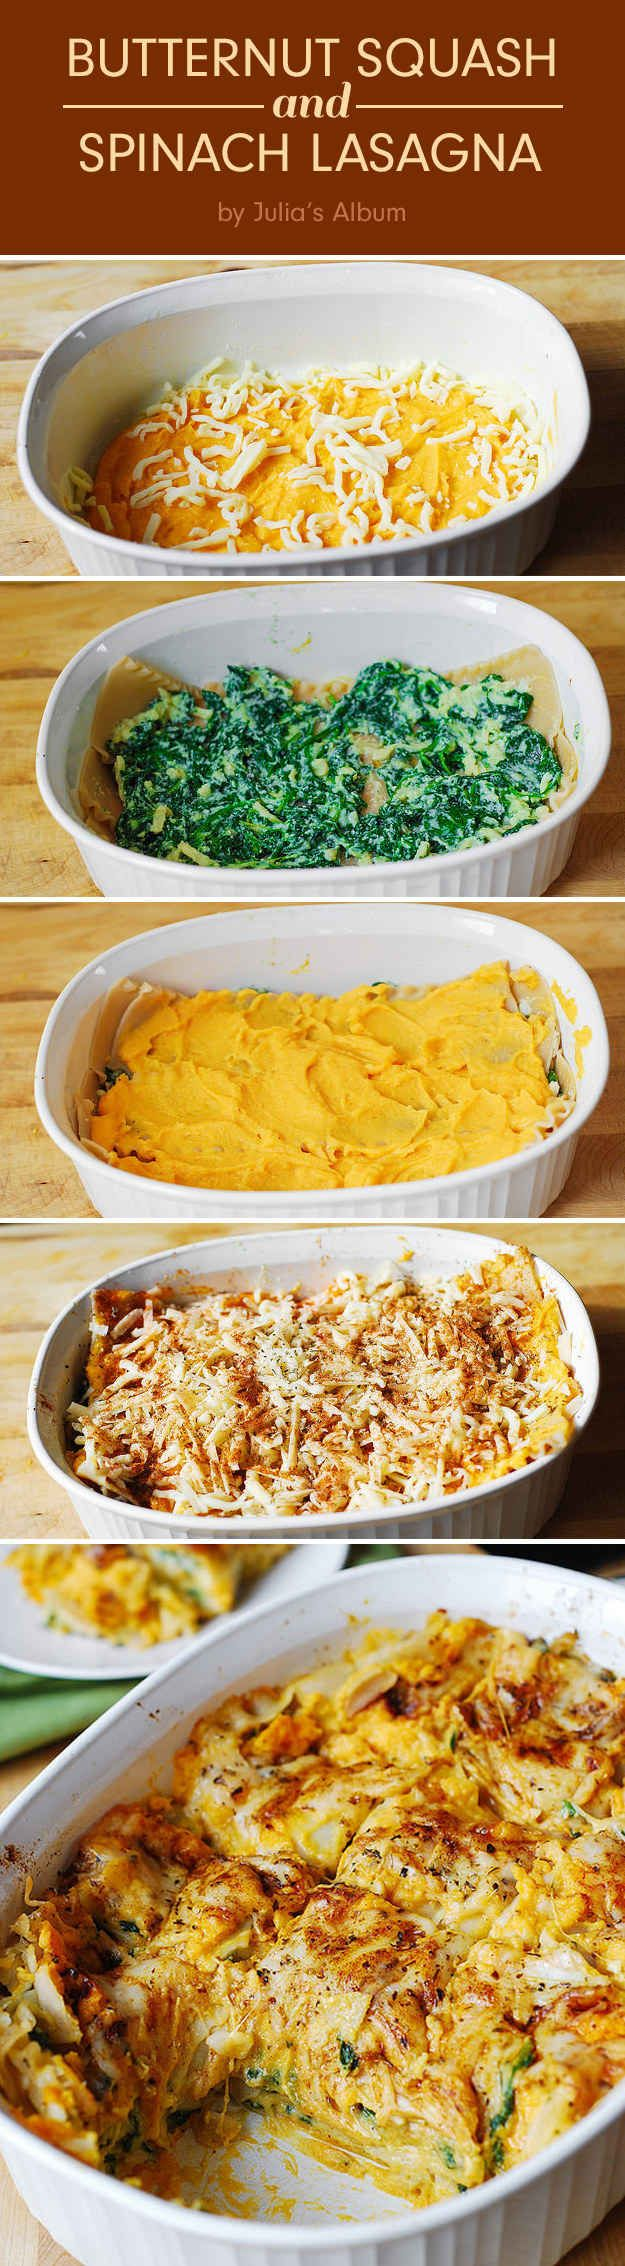 Butternut Squash and Spinach Lasagna (you can easily use gluten free noodles!) Healthy, meatless, gluten free recipe.